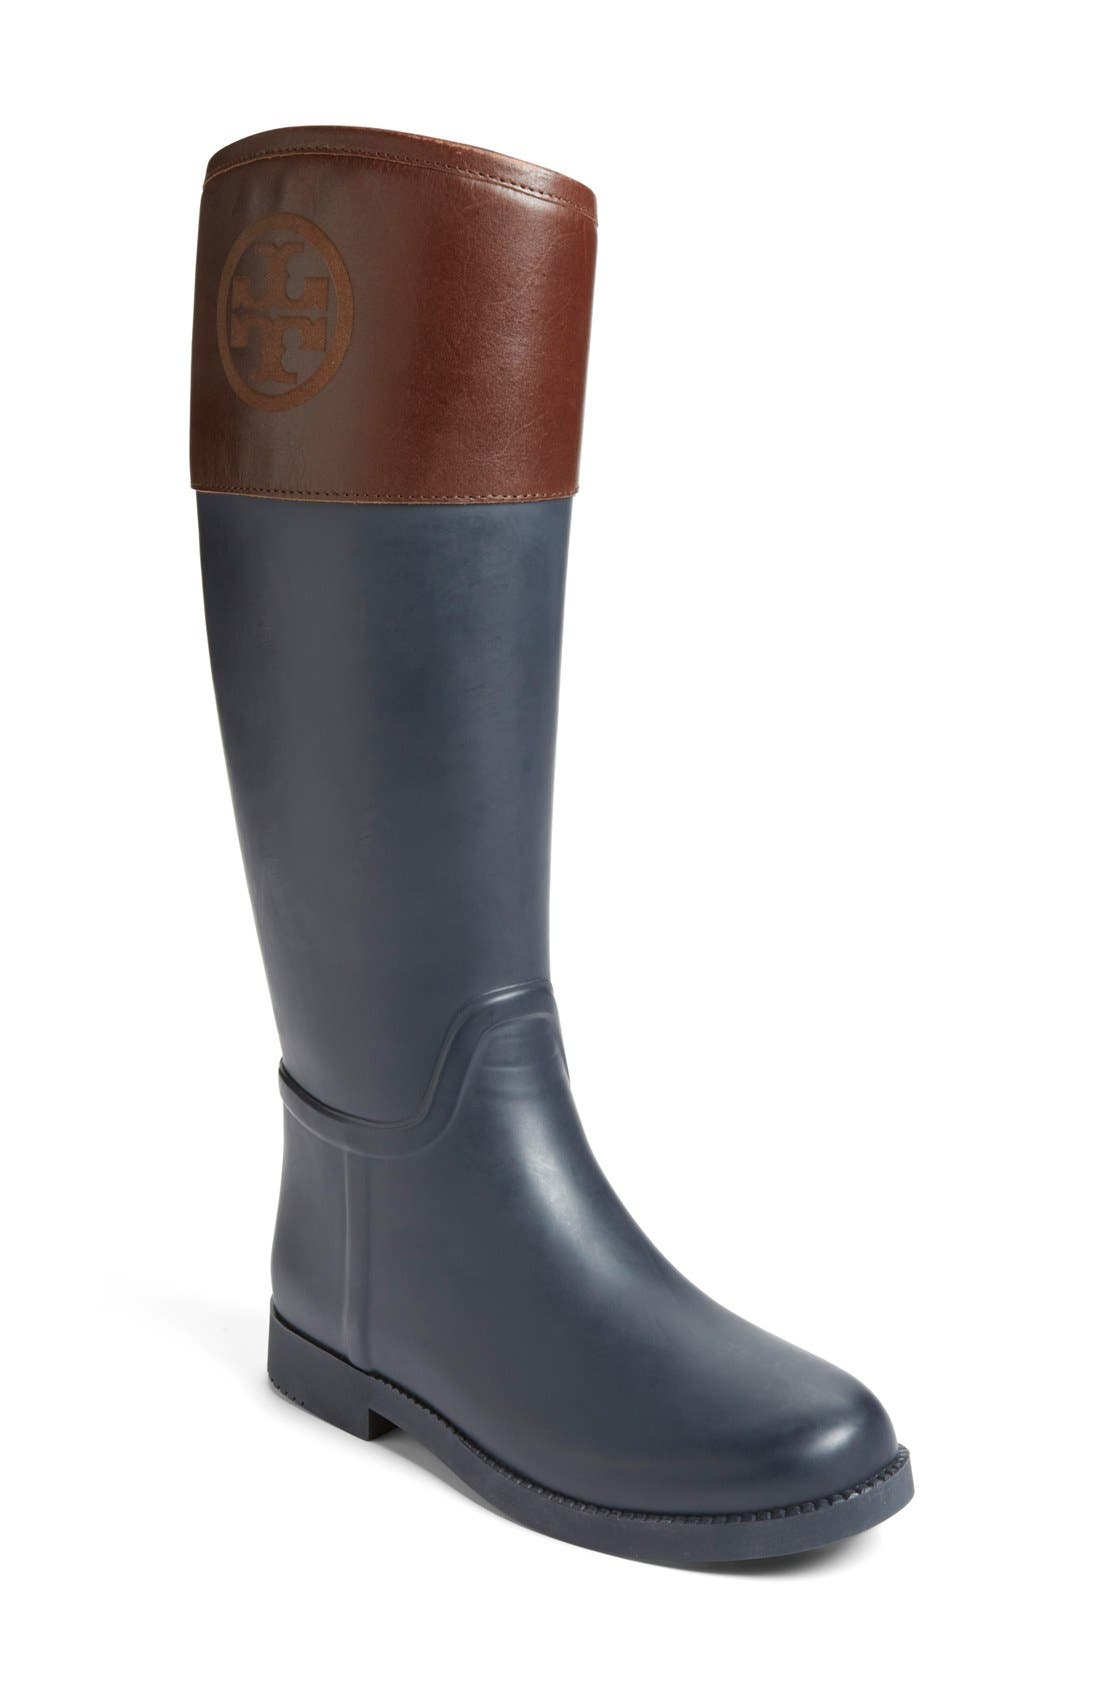 Main Image - Tory Burch 'Classic' Rain Boot (Women) (Nordstrom Exclusive)